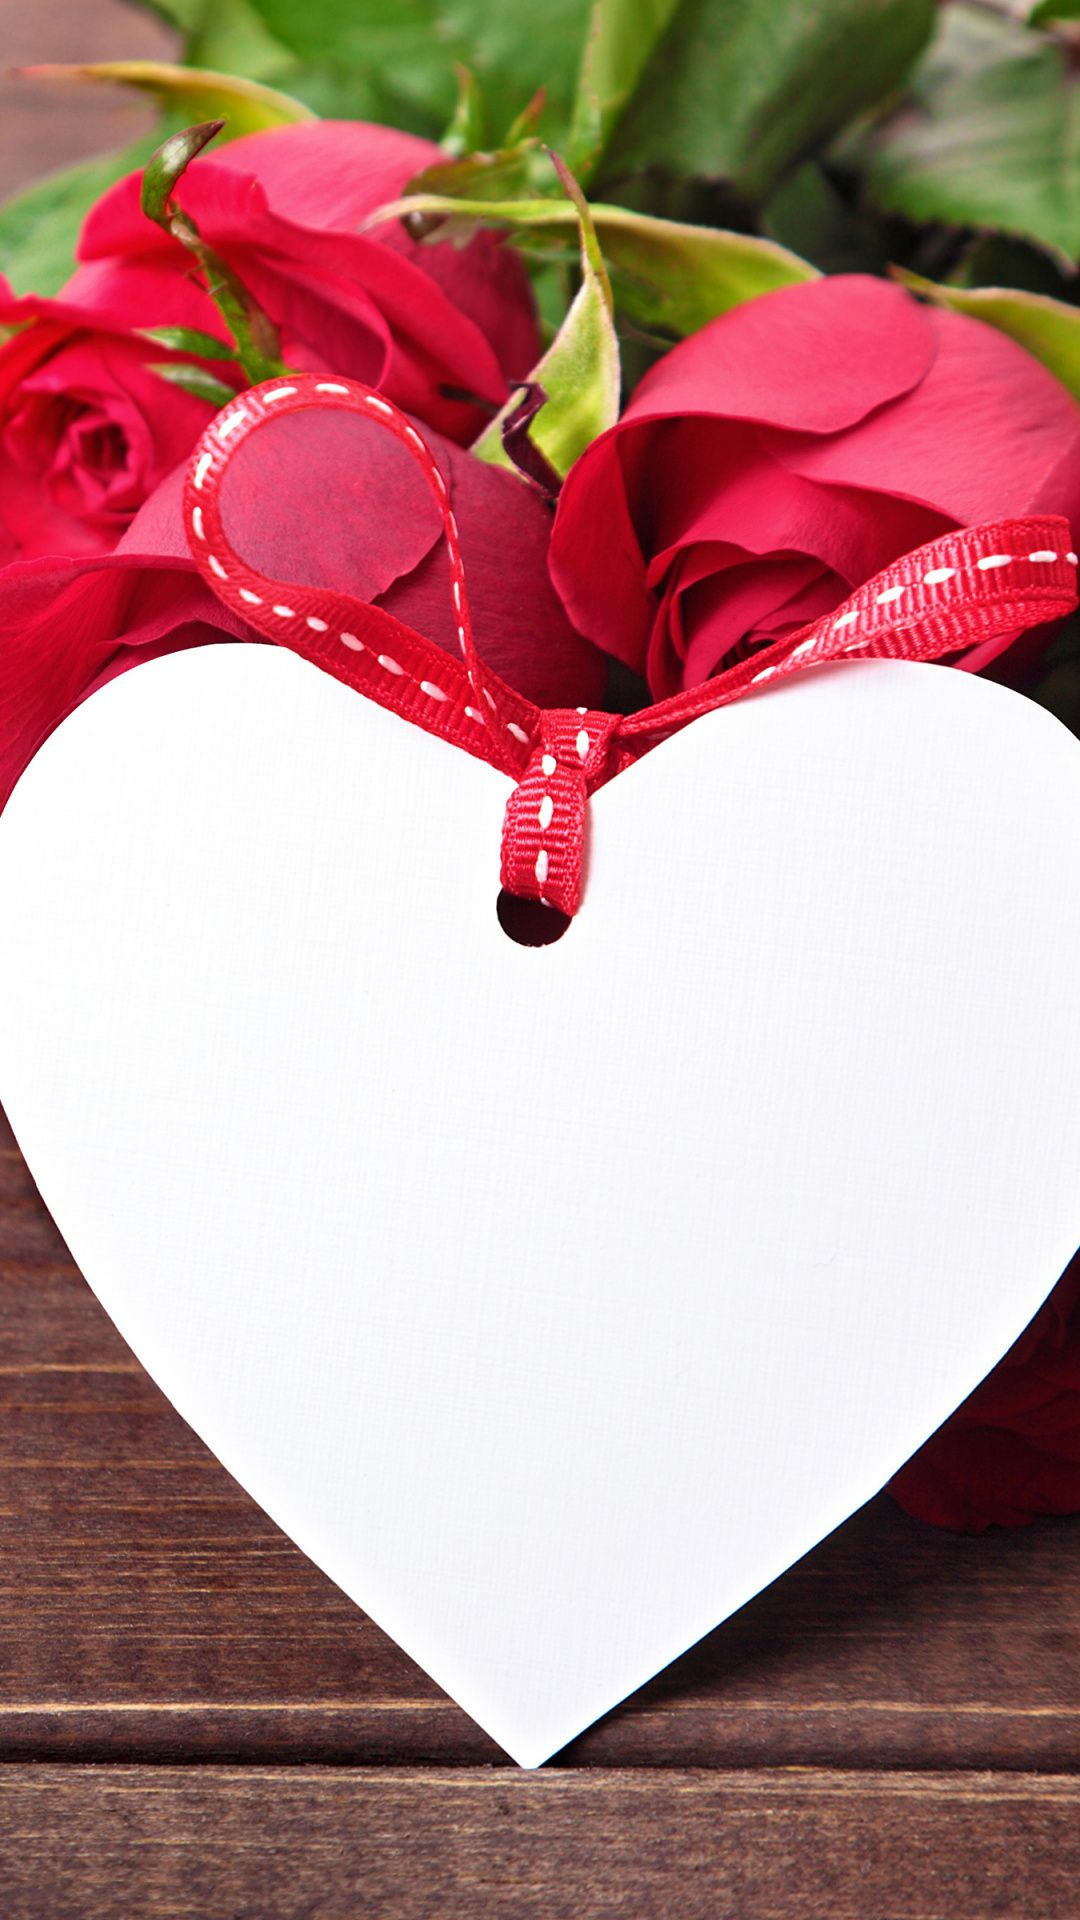 Cute Love free wallpaper for Android